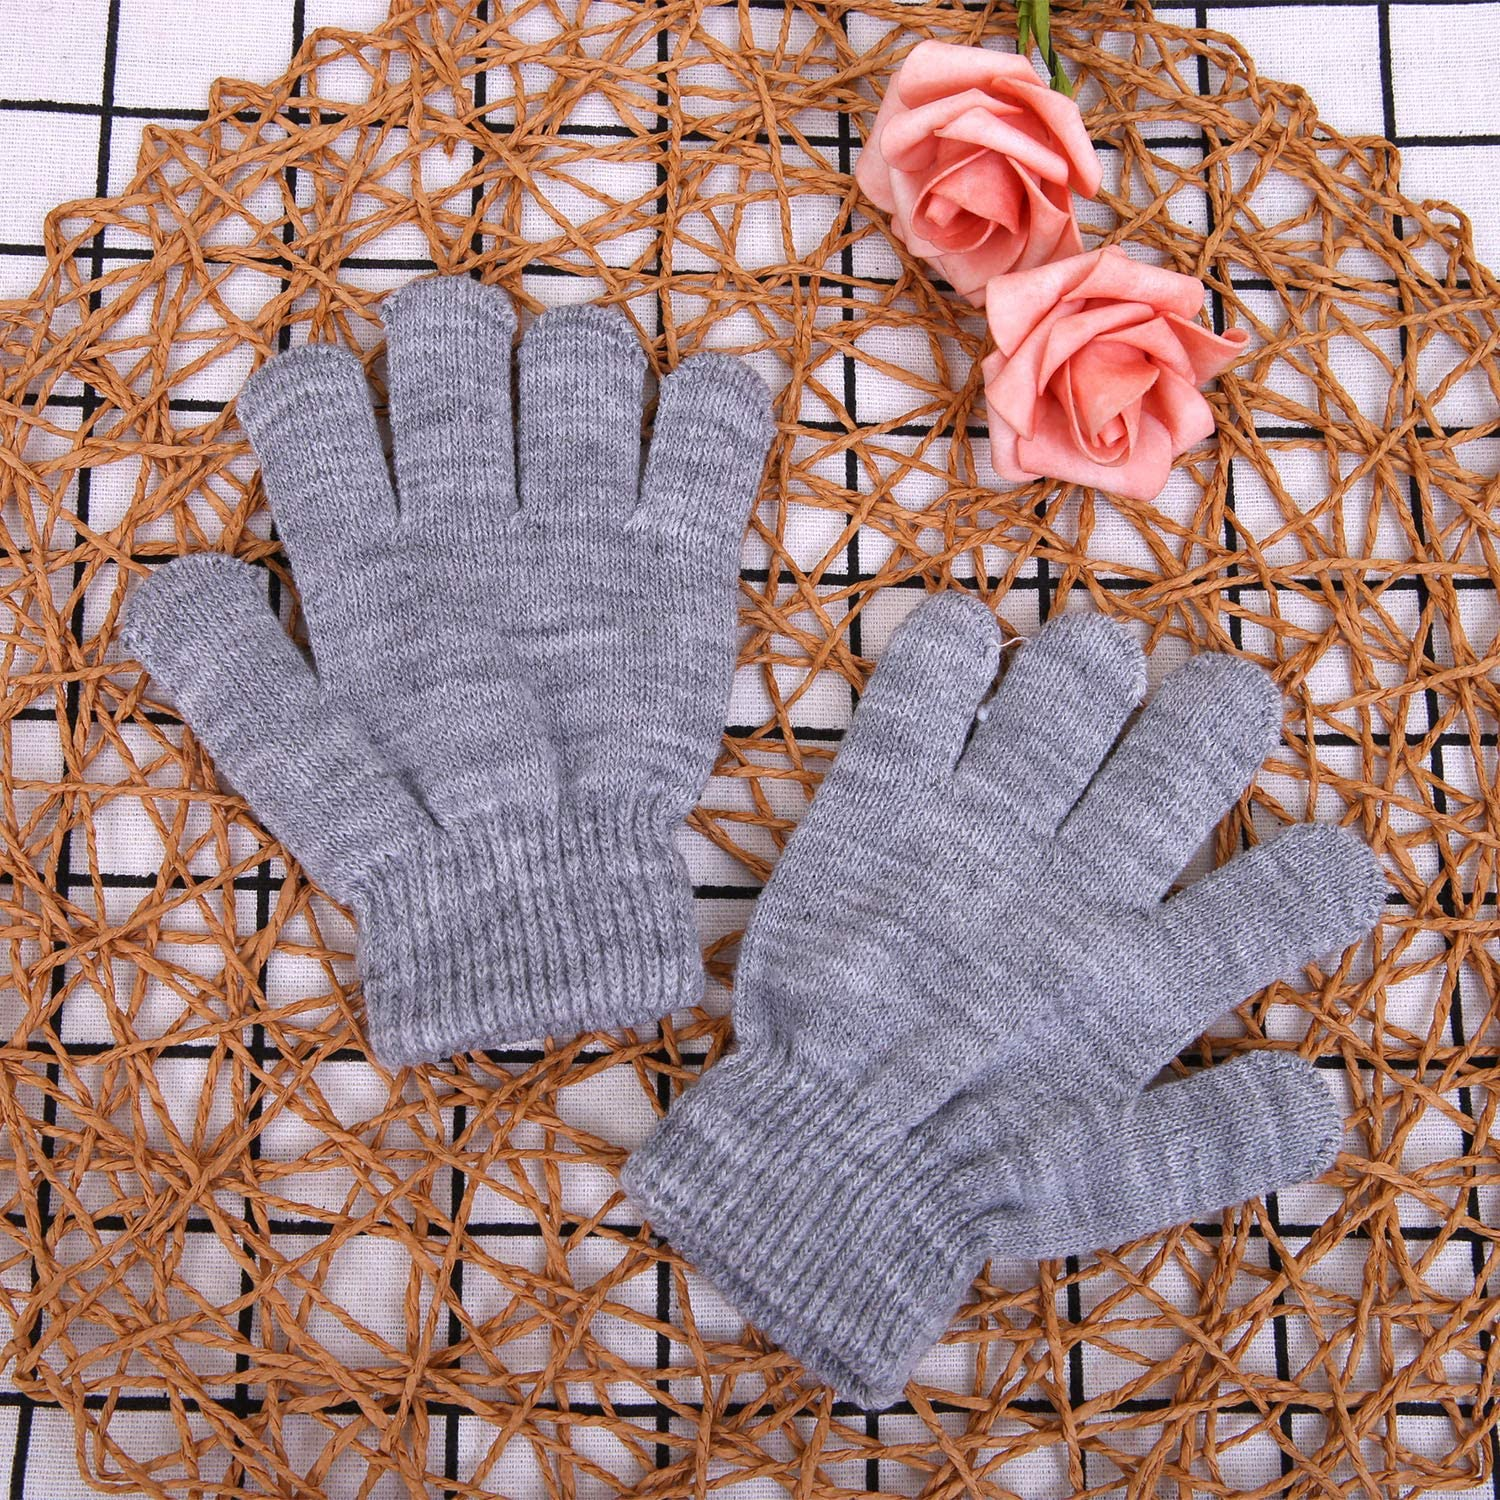 Cooraby 2 Pairs Kid's Thick Magic Gloves Winter Stretchy Warm Full Fingers Gloves Mittens